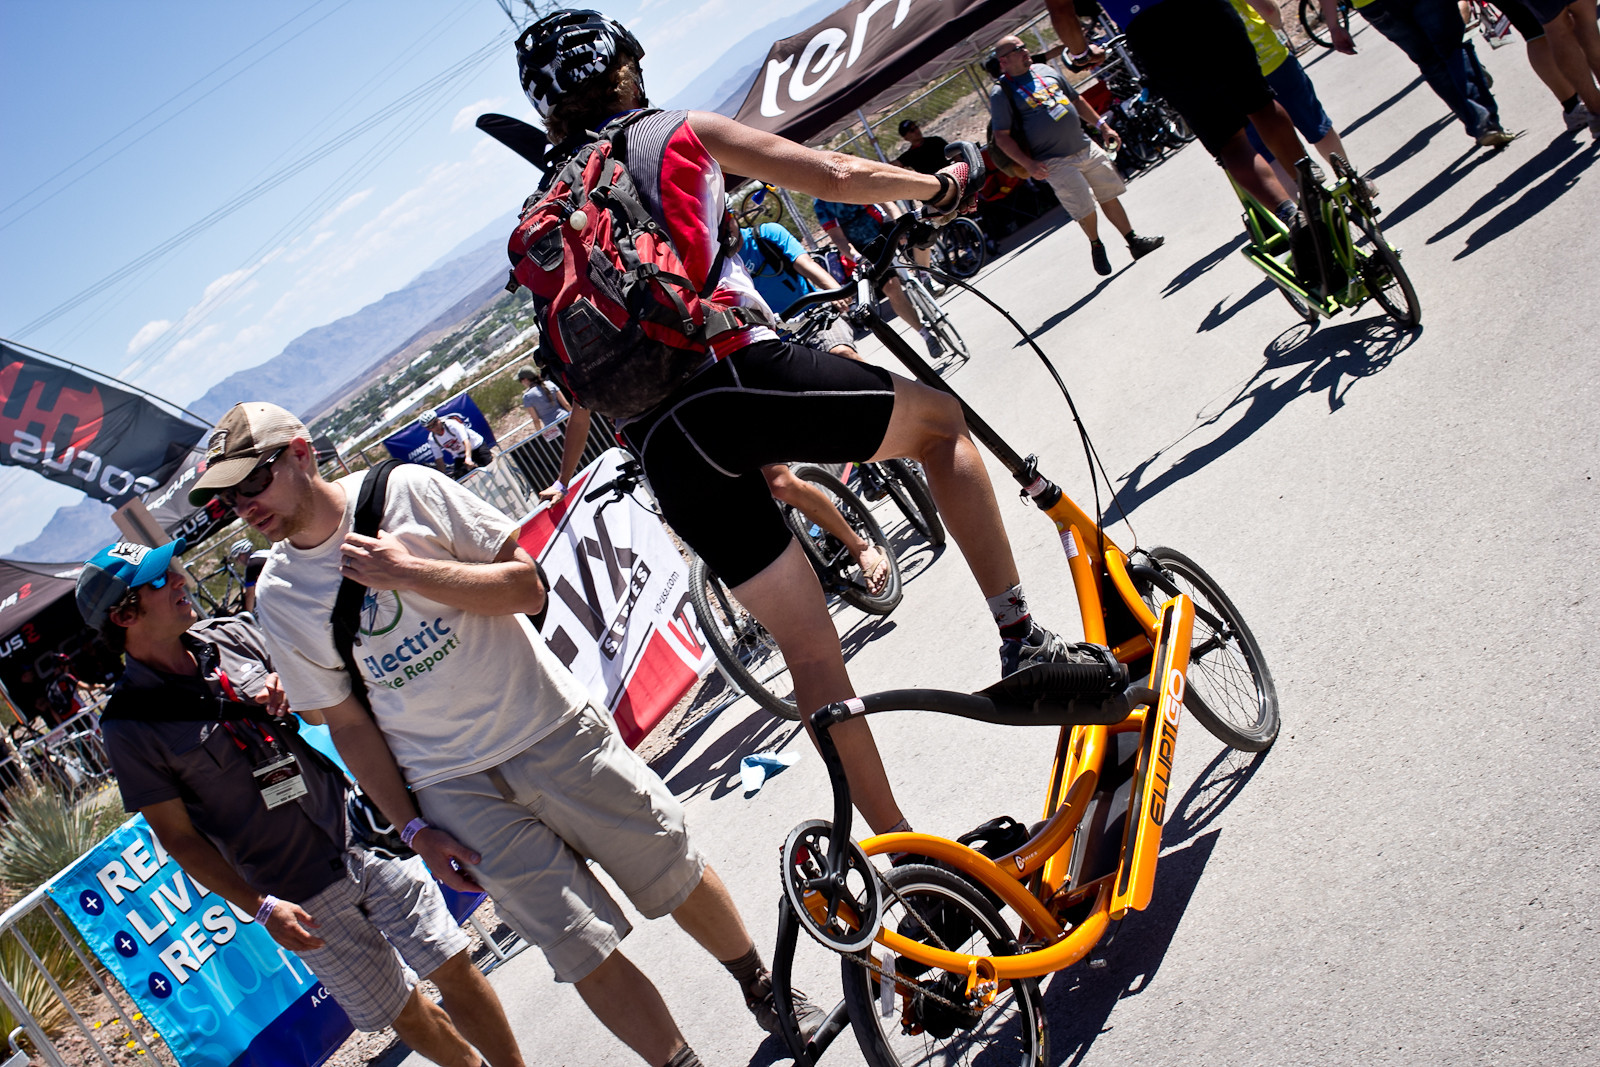 Elliptical Bike - INTERBIKE: Part 1 - Outdoor Demo Rad Bits & Randoms - Mountain Biking Pictures - Vital MTB